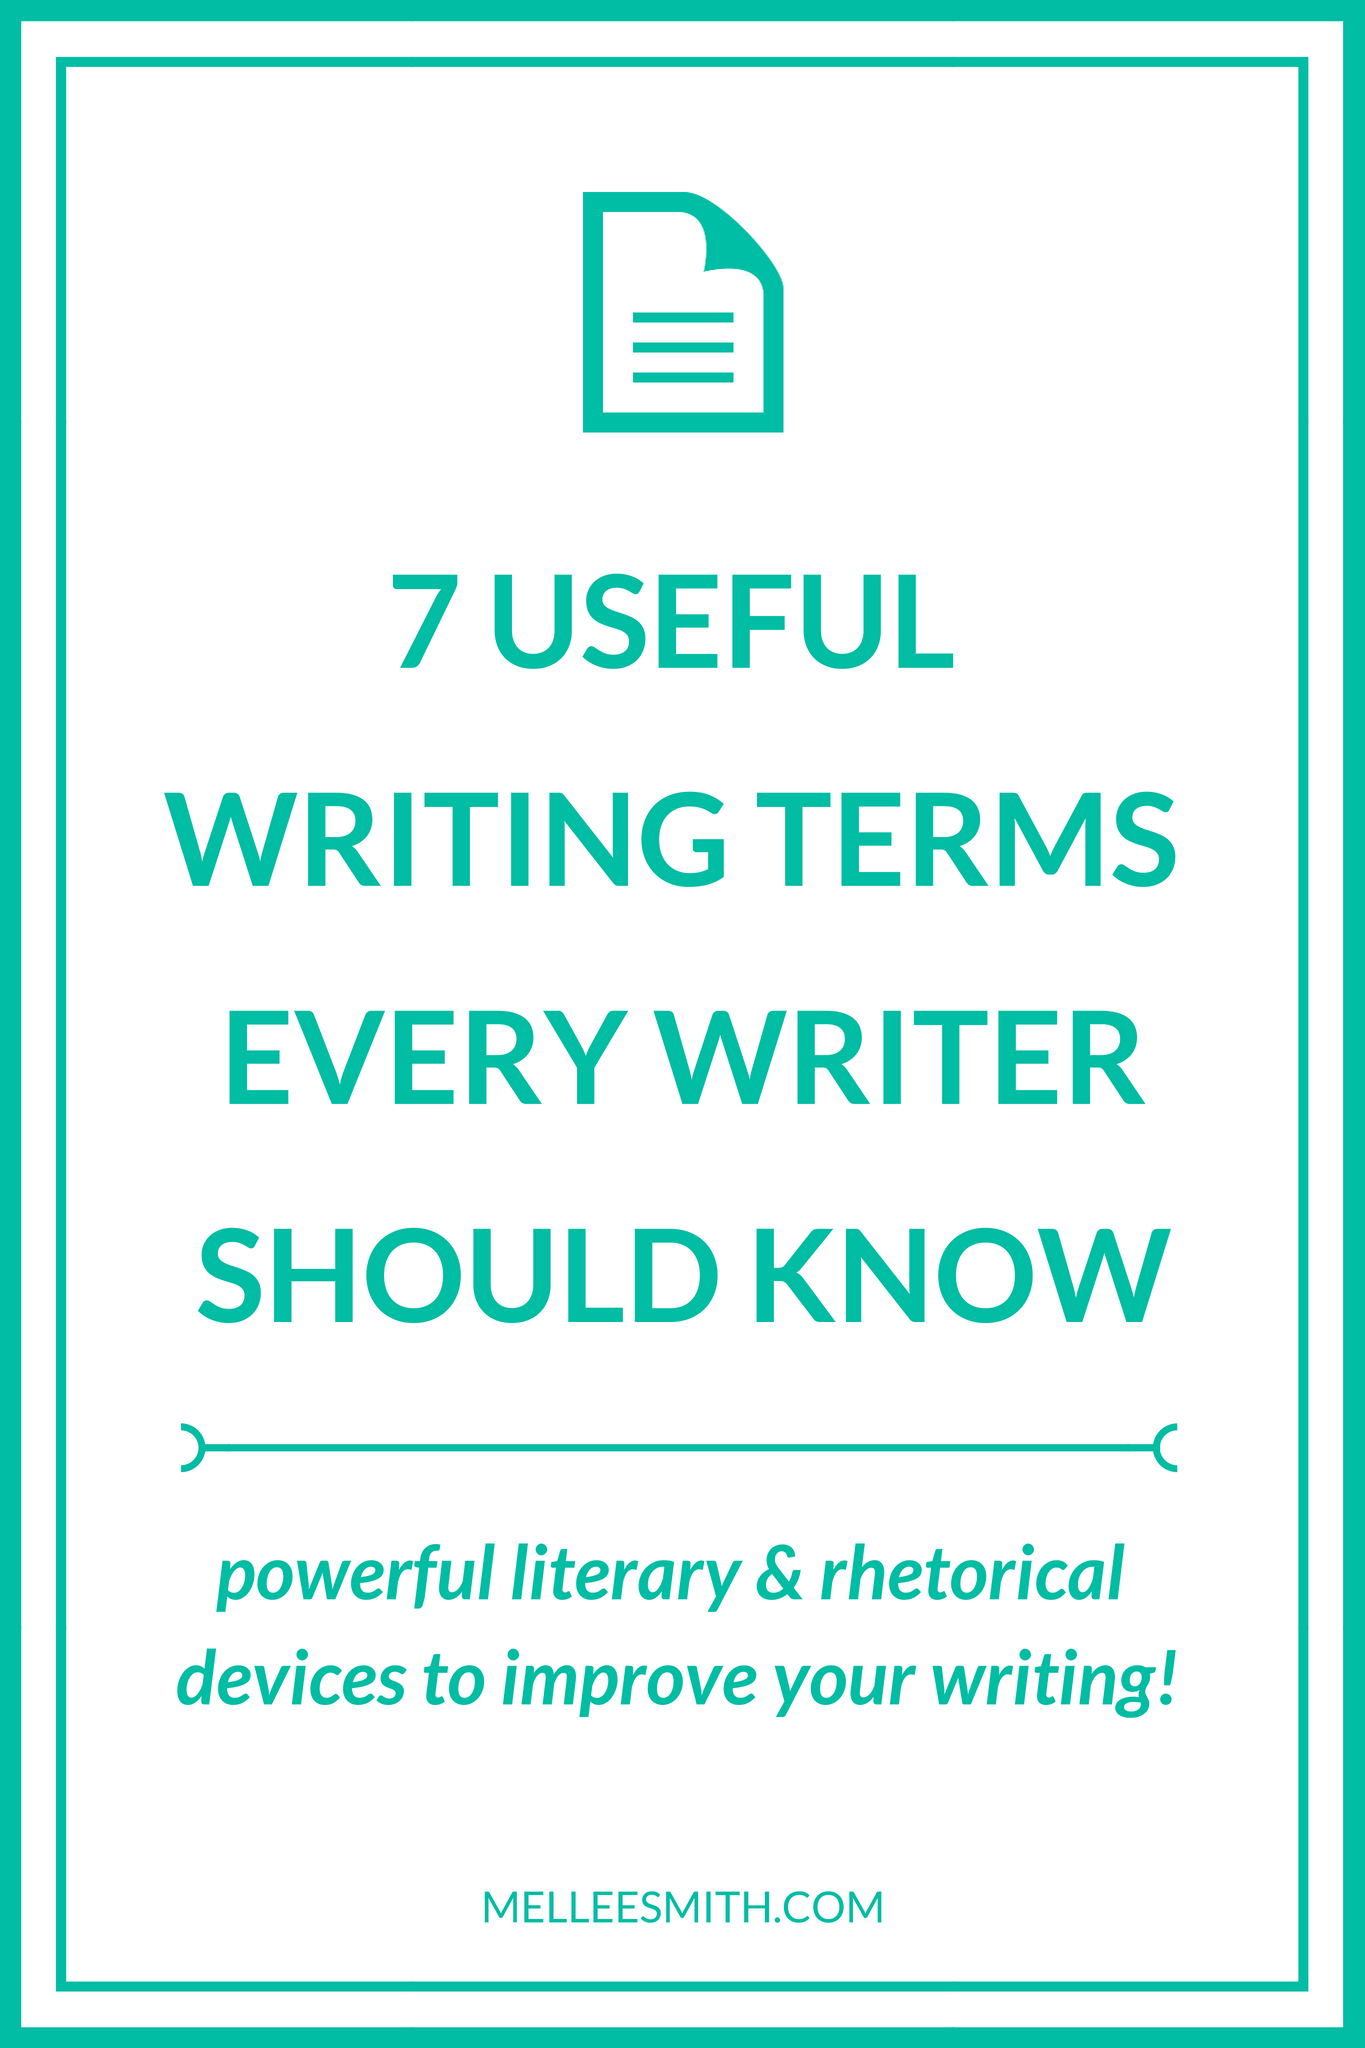 useful writing terms, useful terms for writers, useful writing terms every writer should know